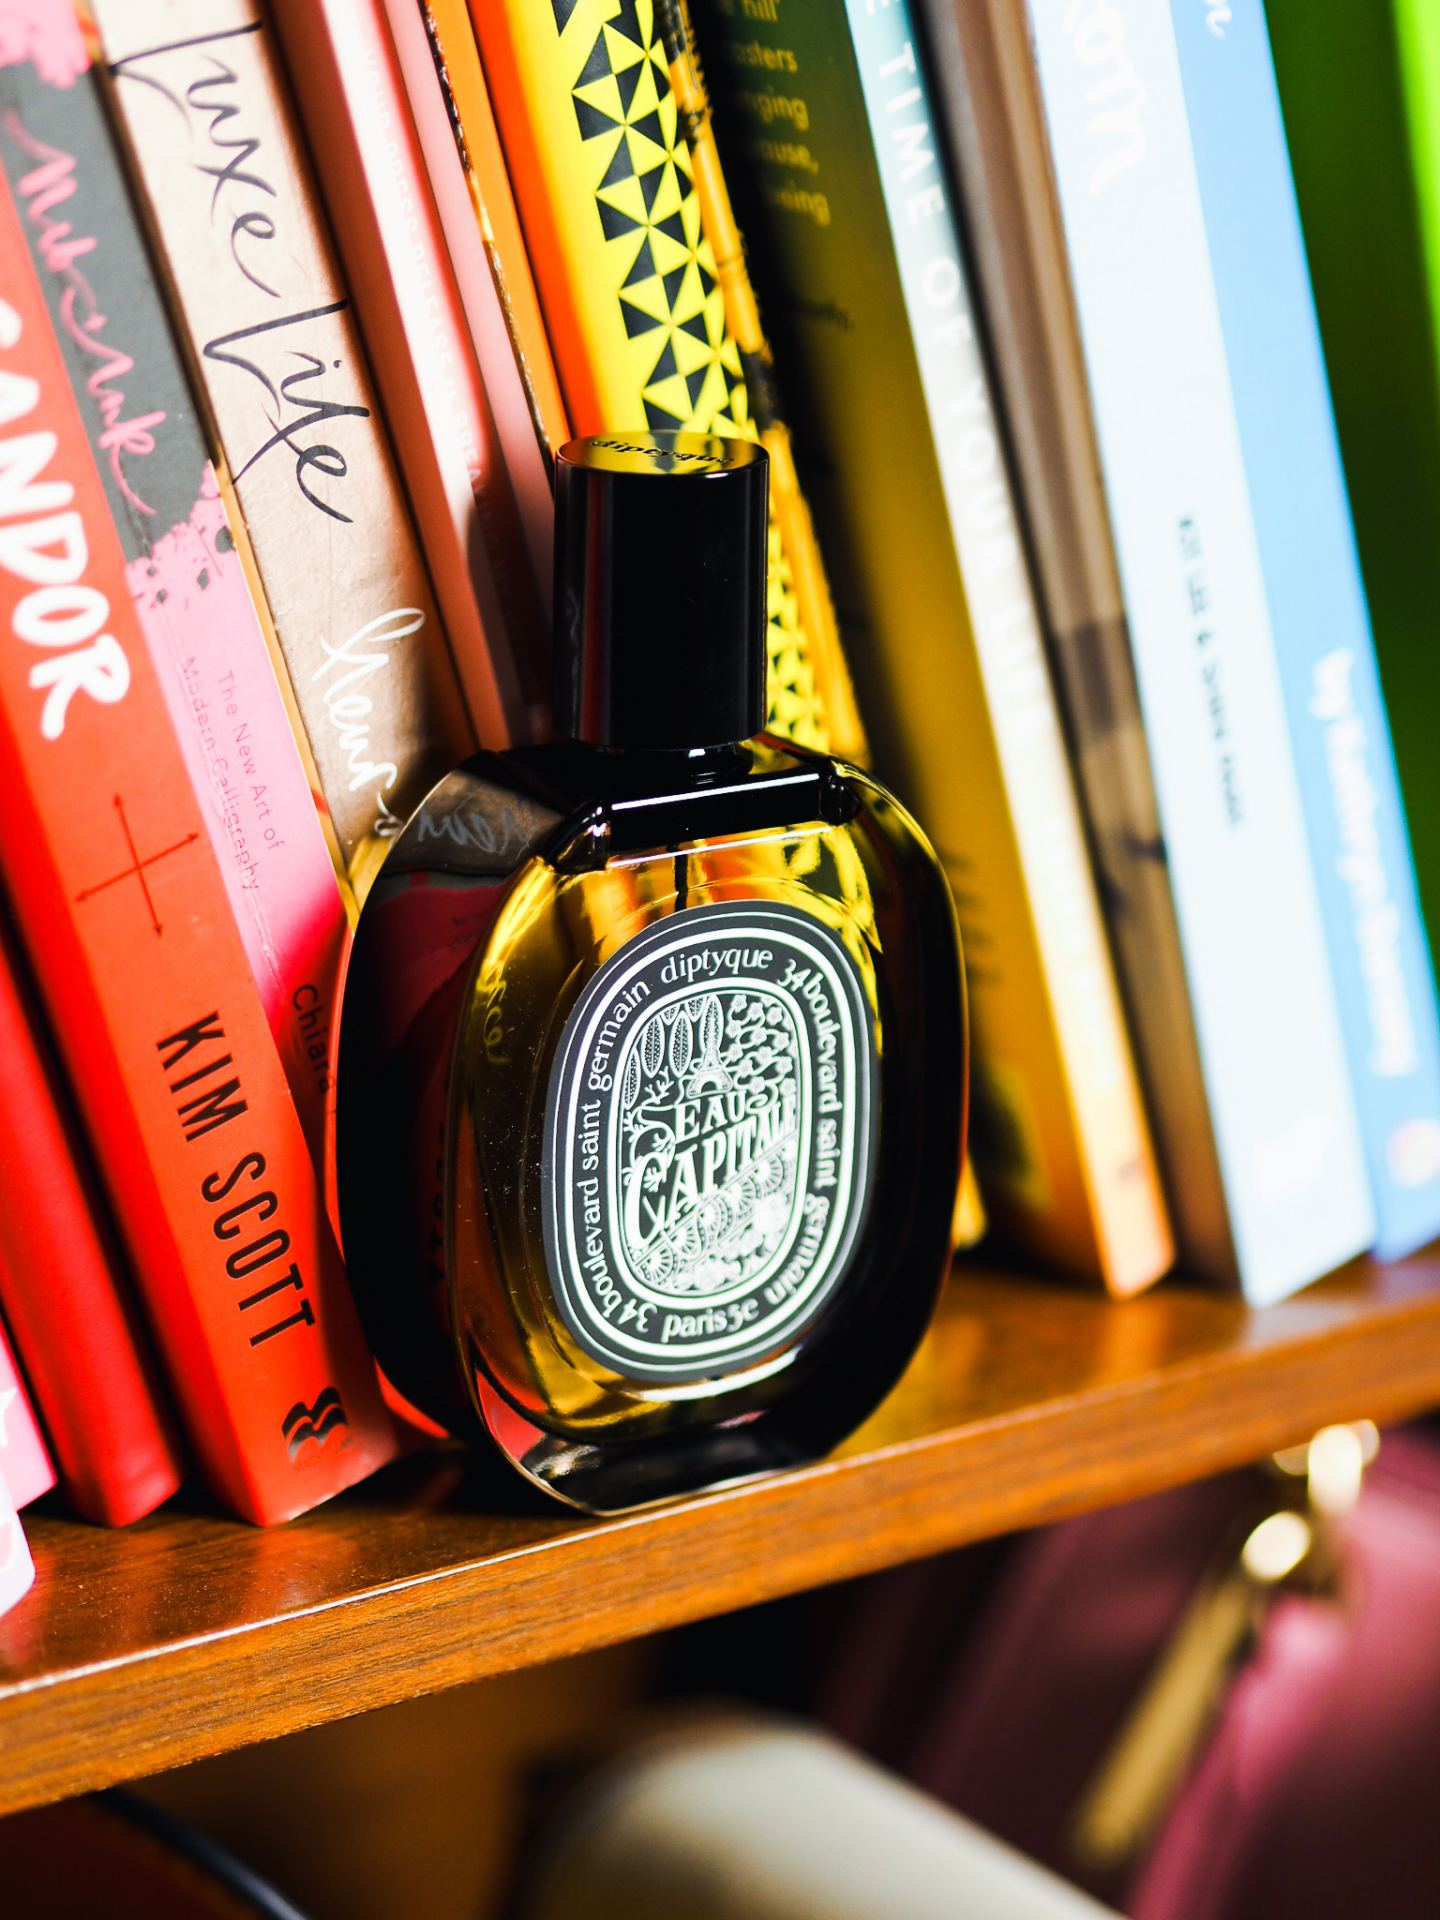 Diptyque 'Eau Capitale' perfume review 2020 rose paris review Diptyque 'Eau Capitale' Review